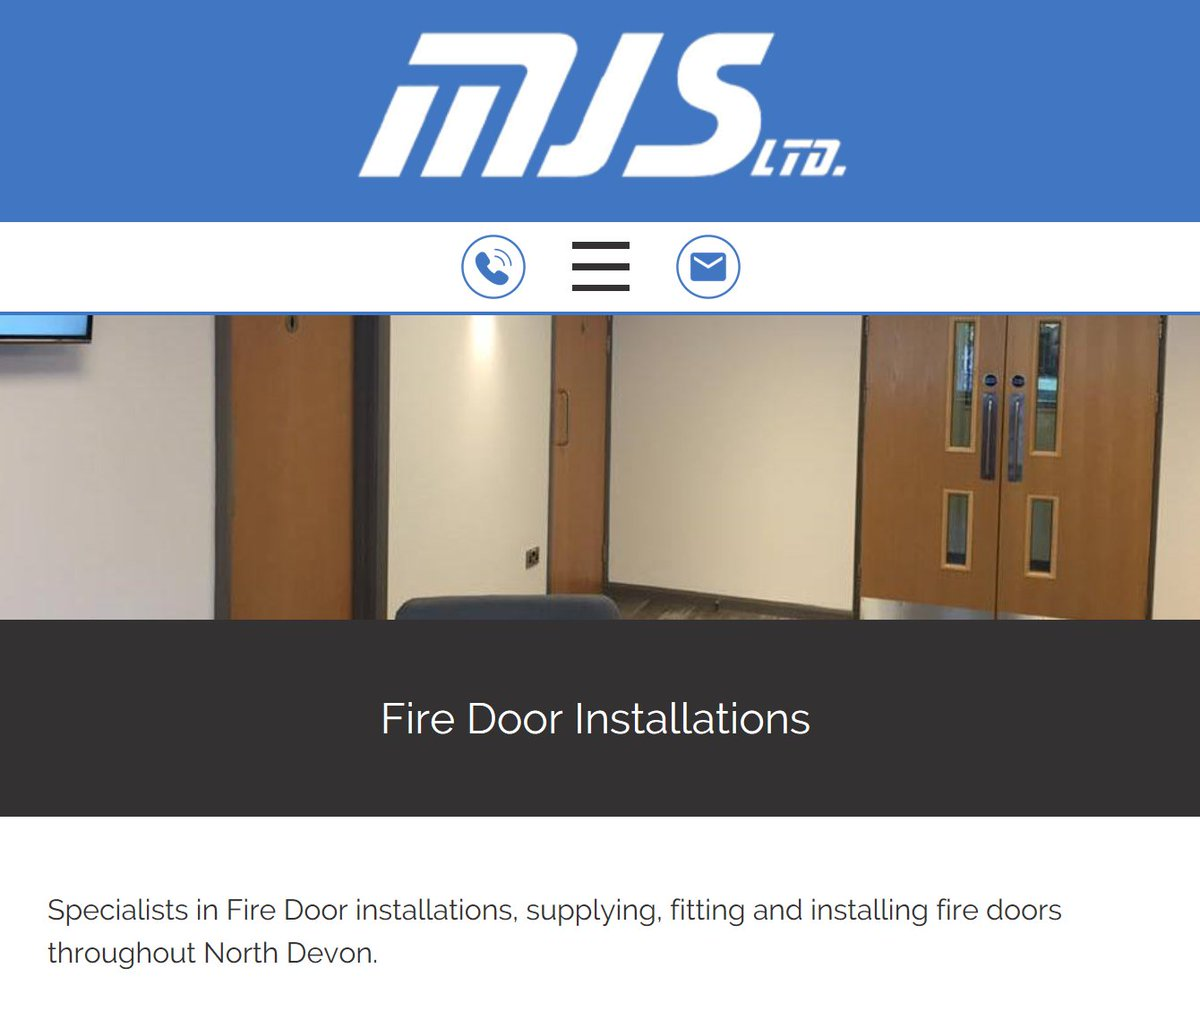 MJS Building Maint on Twitter  Specialists in Fire Door installations supplying and fitting here in Barnstaple North Devon #firedoorsafetyweek ...  sc 1 st  Twitter & MJS Building Maint on Twitter: